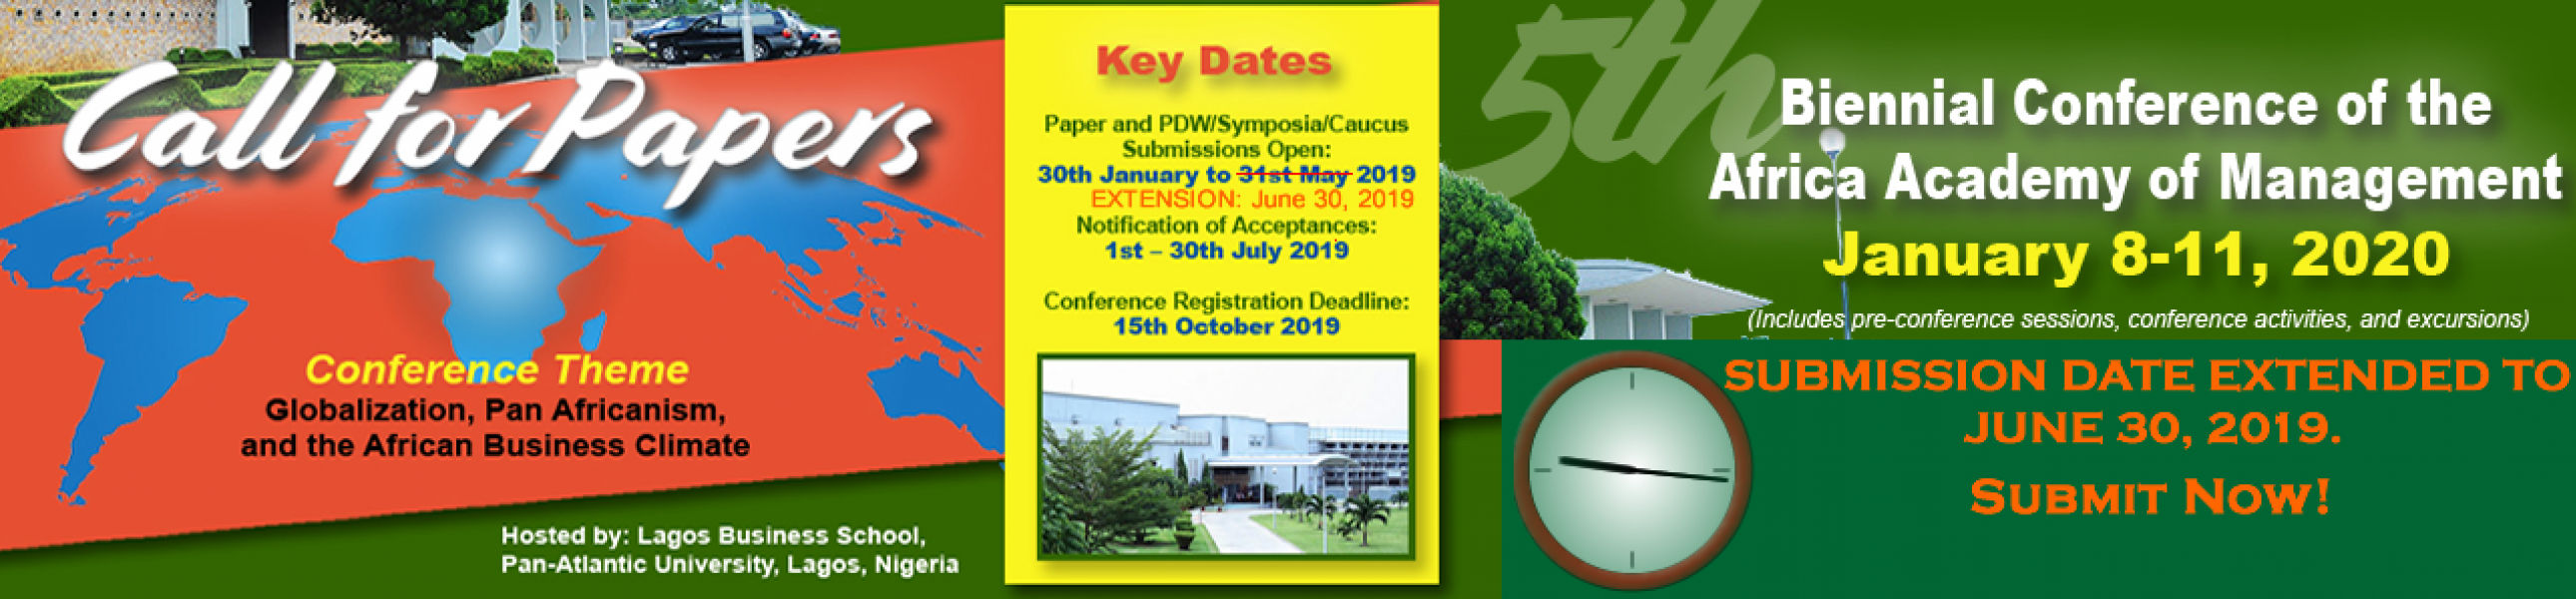 Call for Papers - 5th Biennial Conference - Nigeria 2020